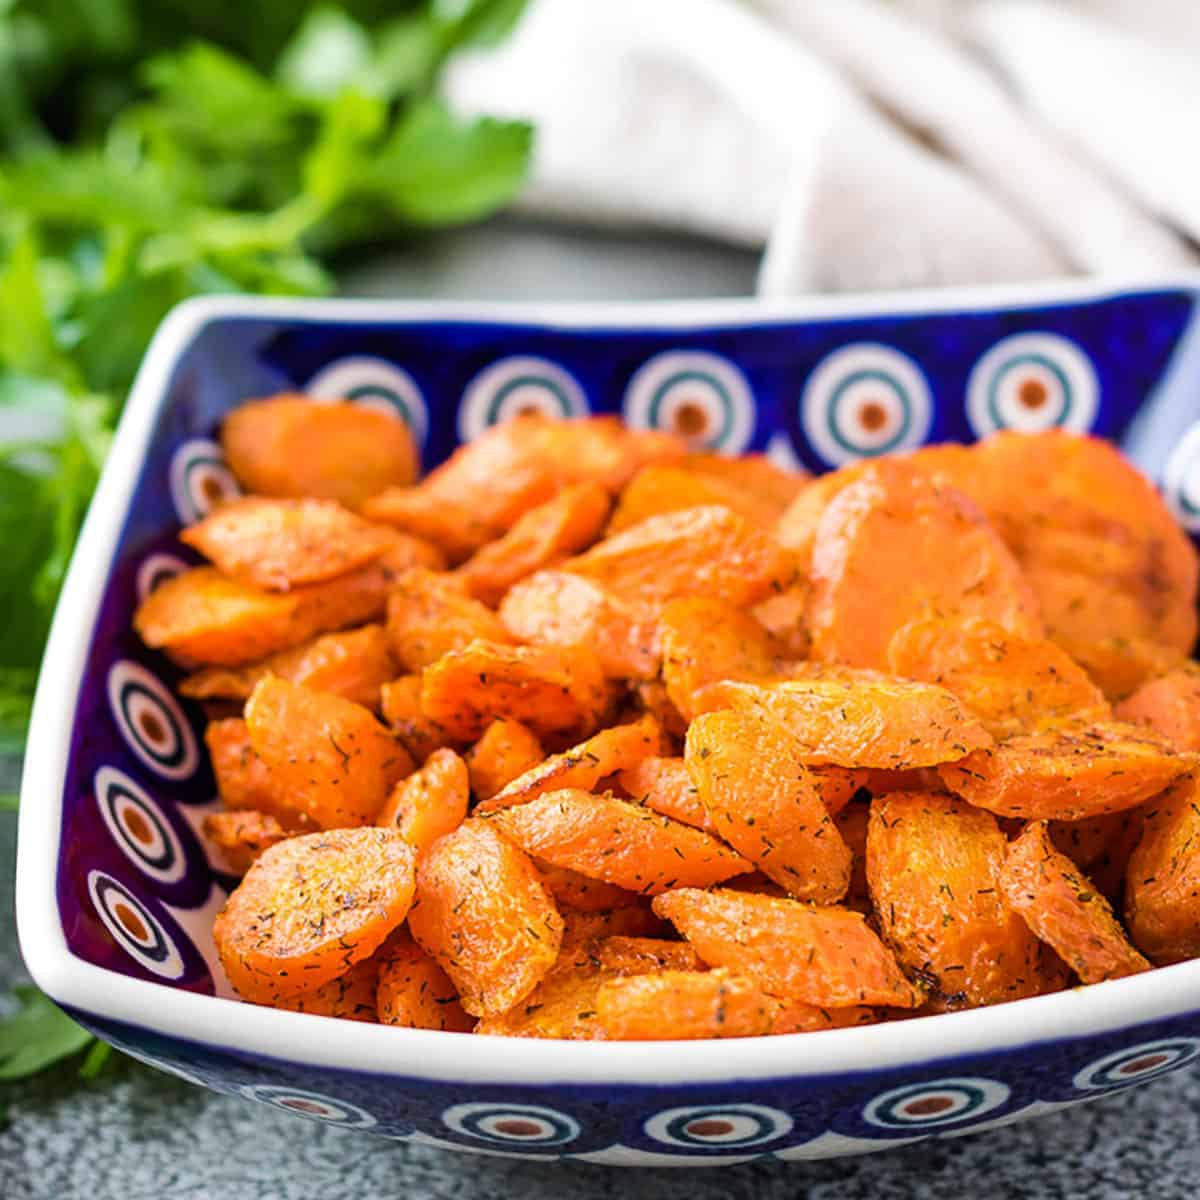 Blue square bowl filled with oven roasted carrots.